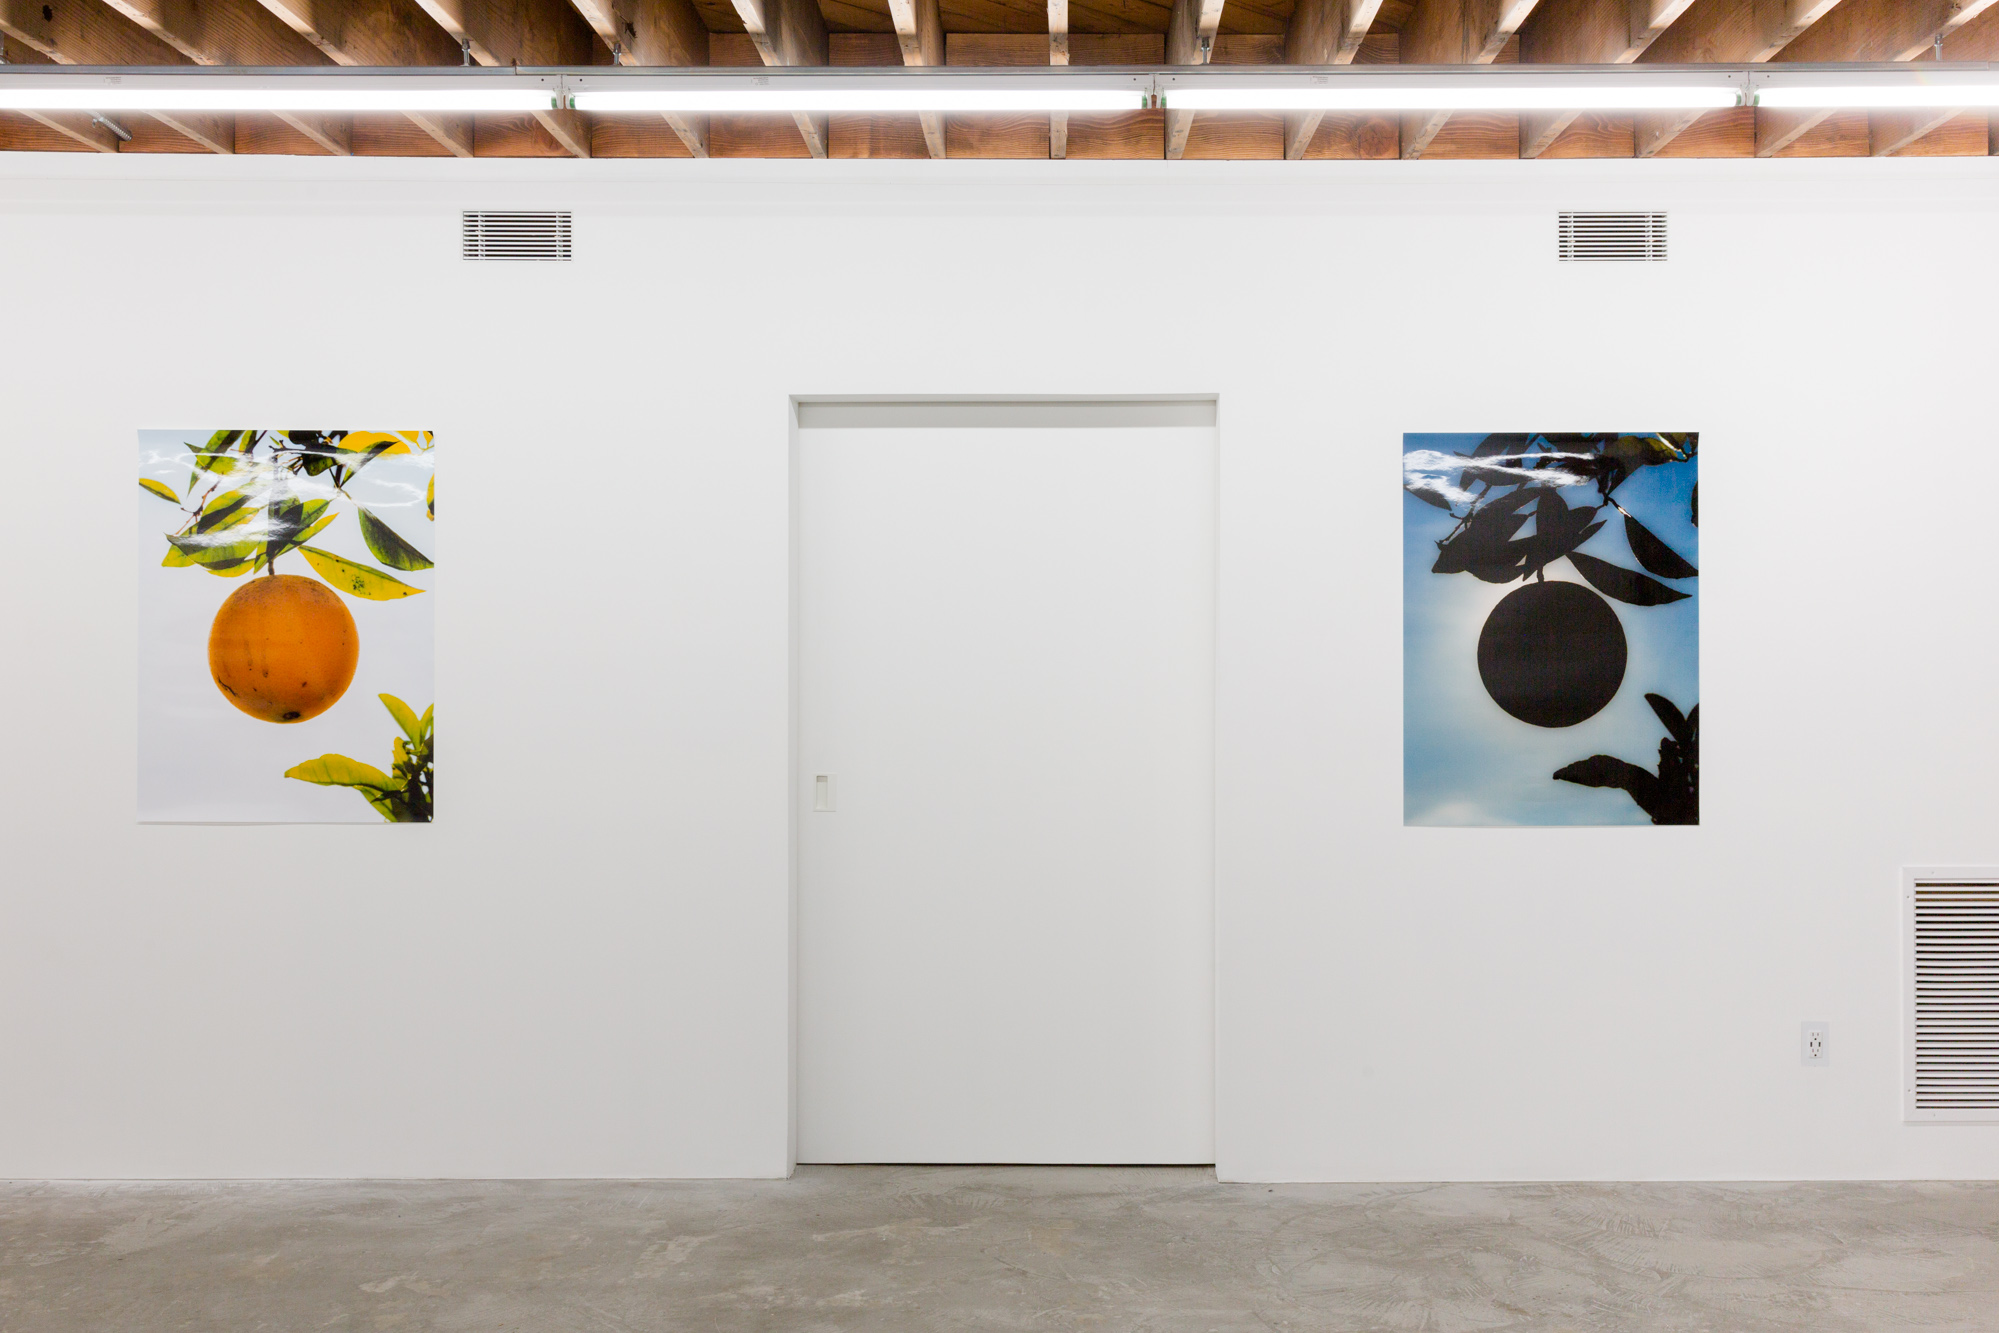 Daniel Terna and Evan Whale_LY Gallery_Exhibition Views_Daniel Terna_2019_websize-1.jpg